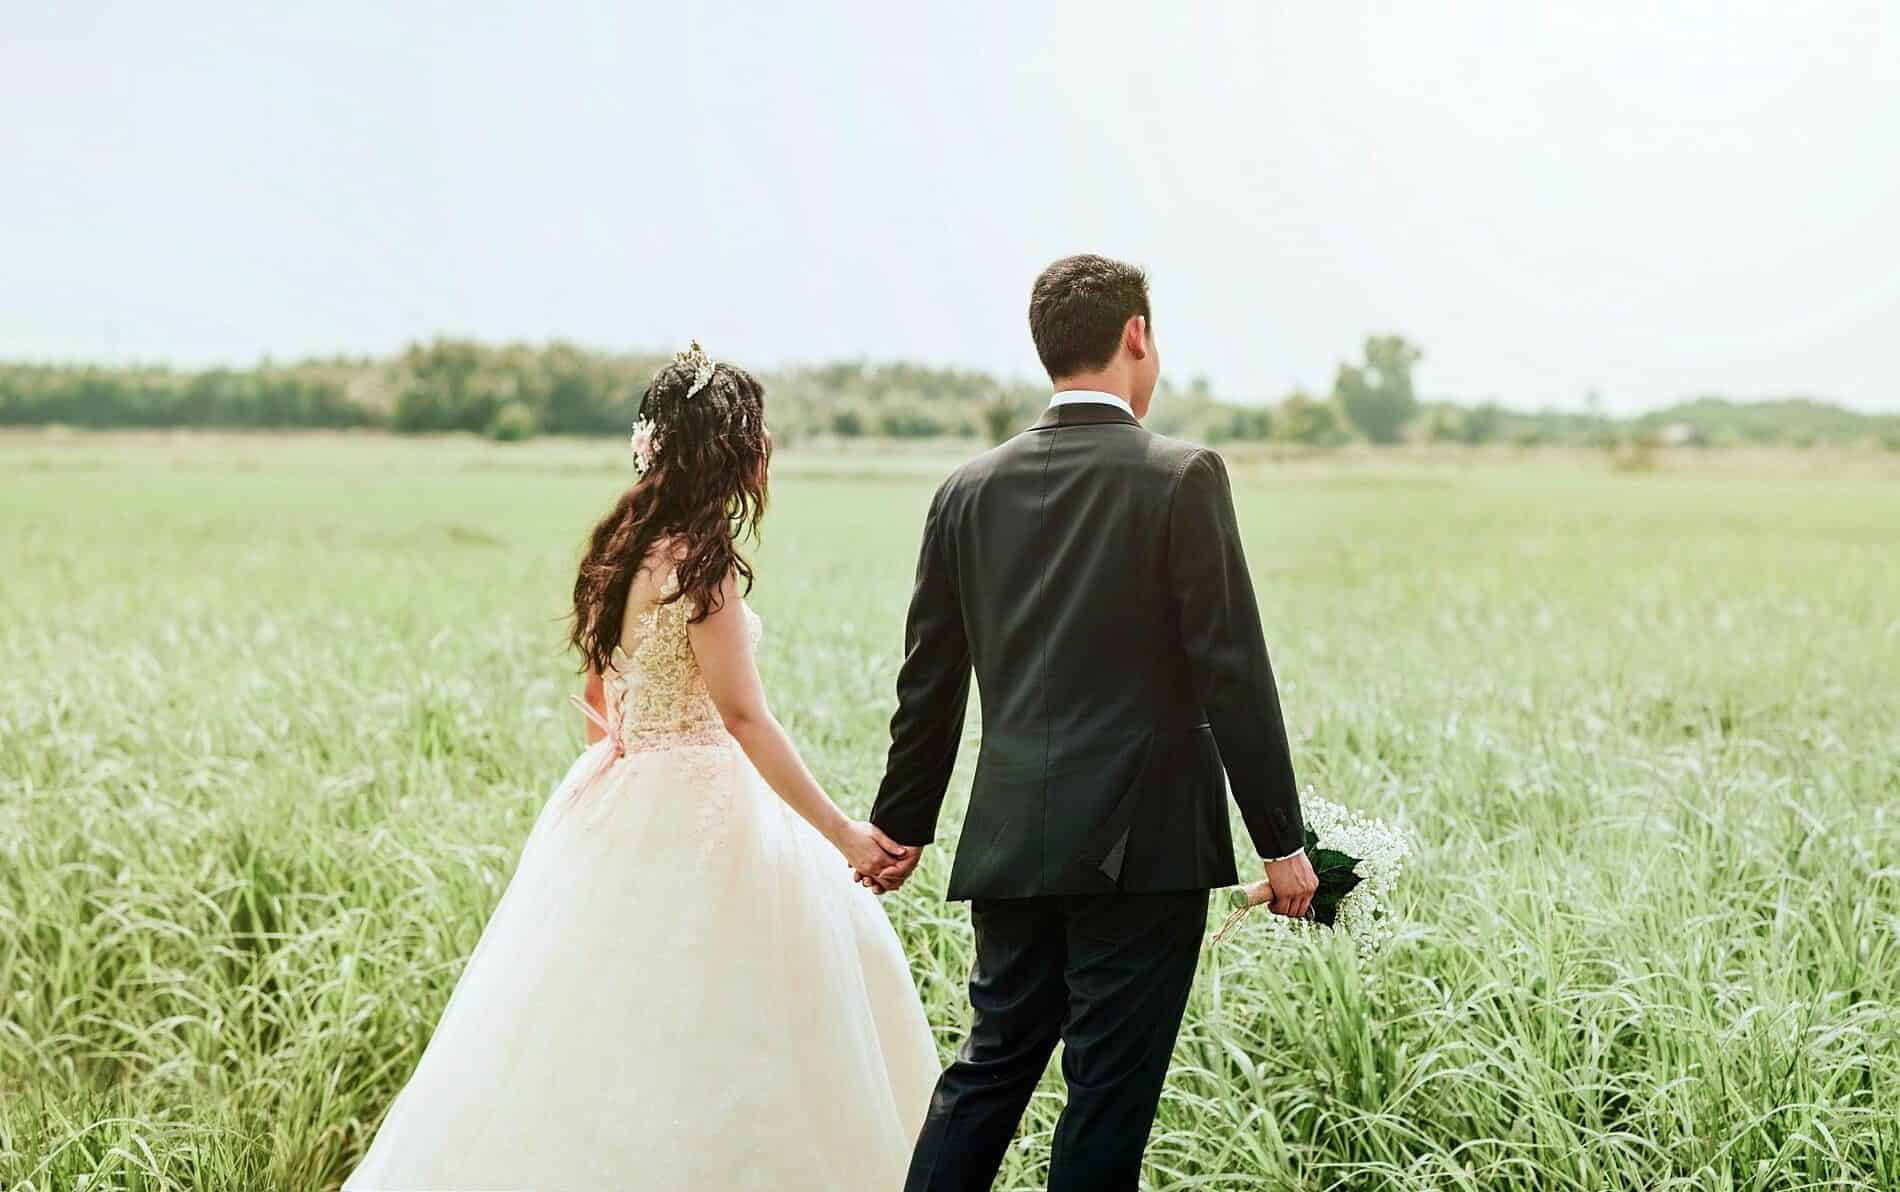 Bride in white dress holding hands with groom in black suite walking in open green field